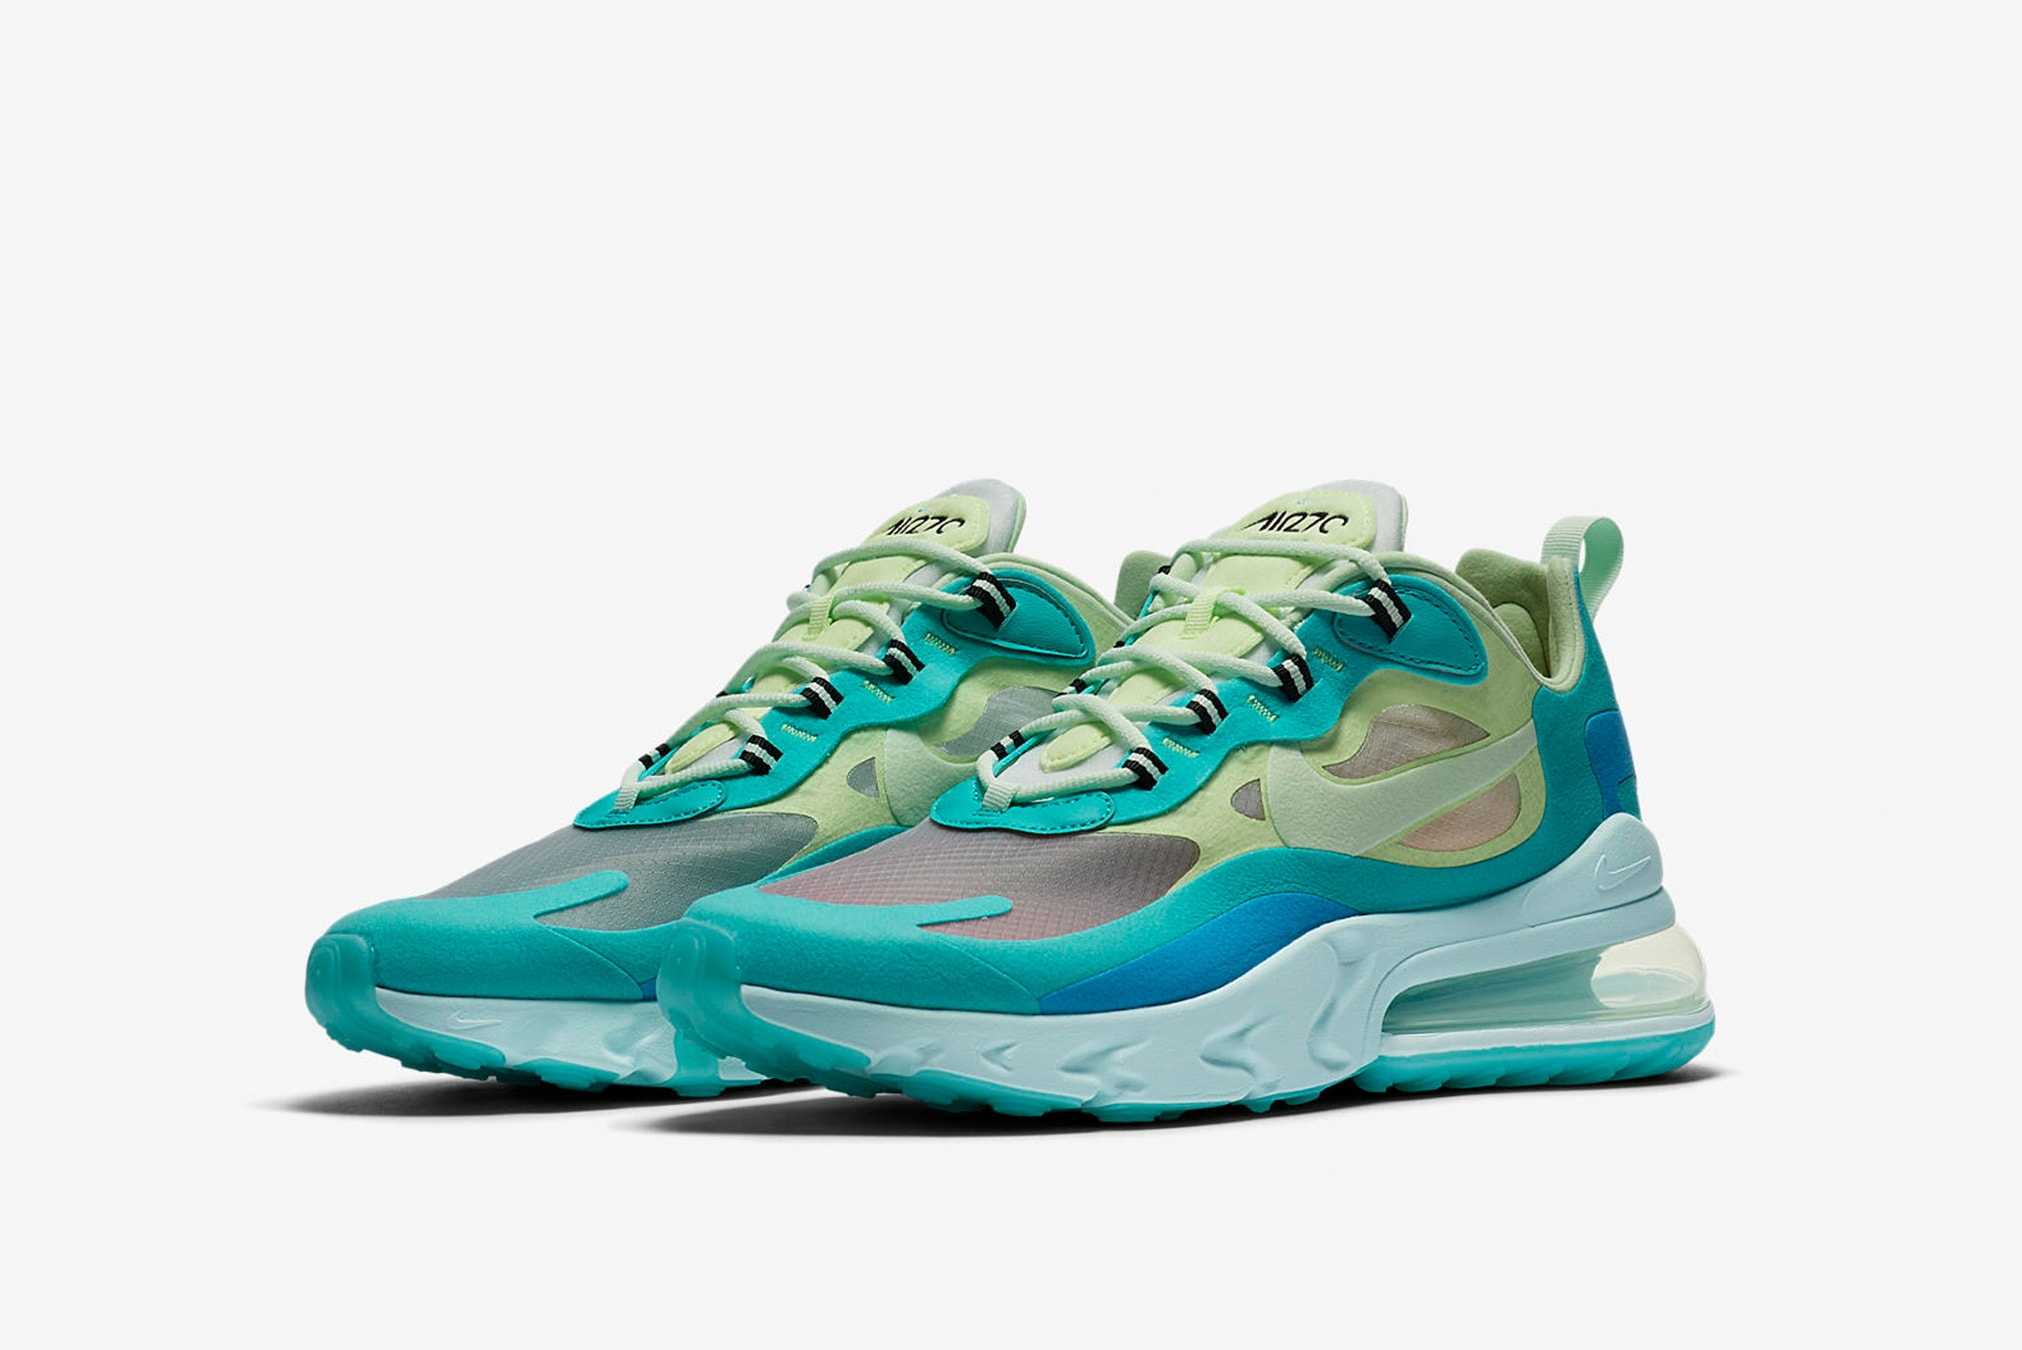 46953b05cd END. Features   Nike Air Max React 270 - Register Now on END. Launches